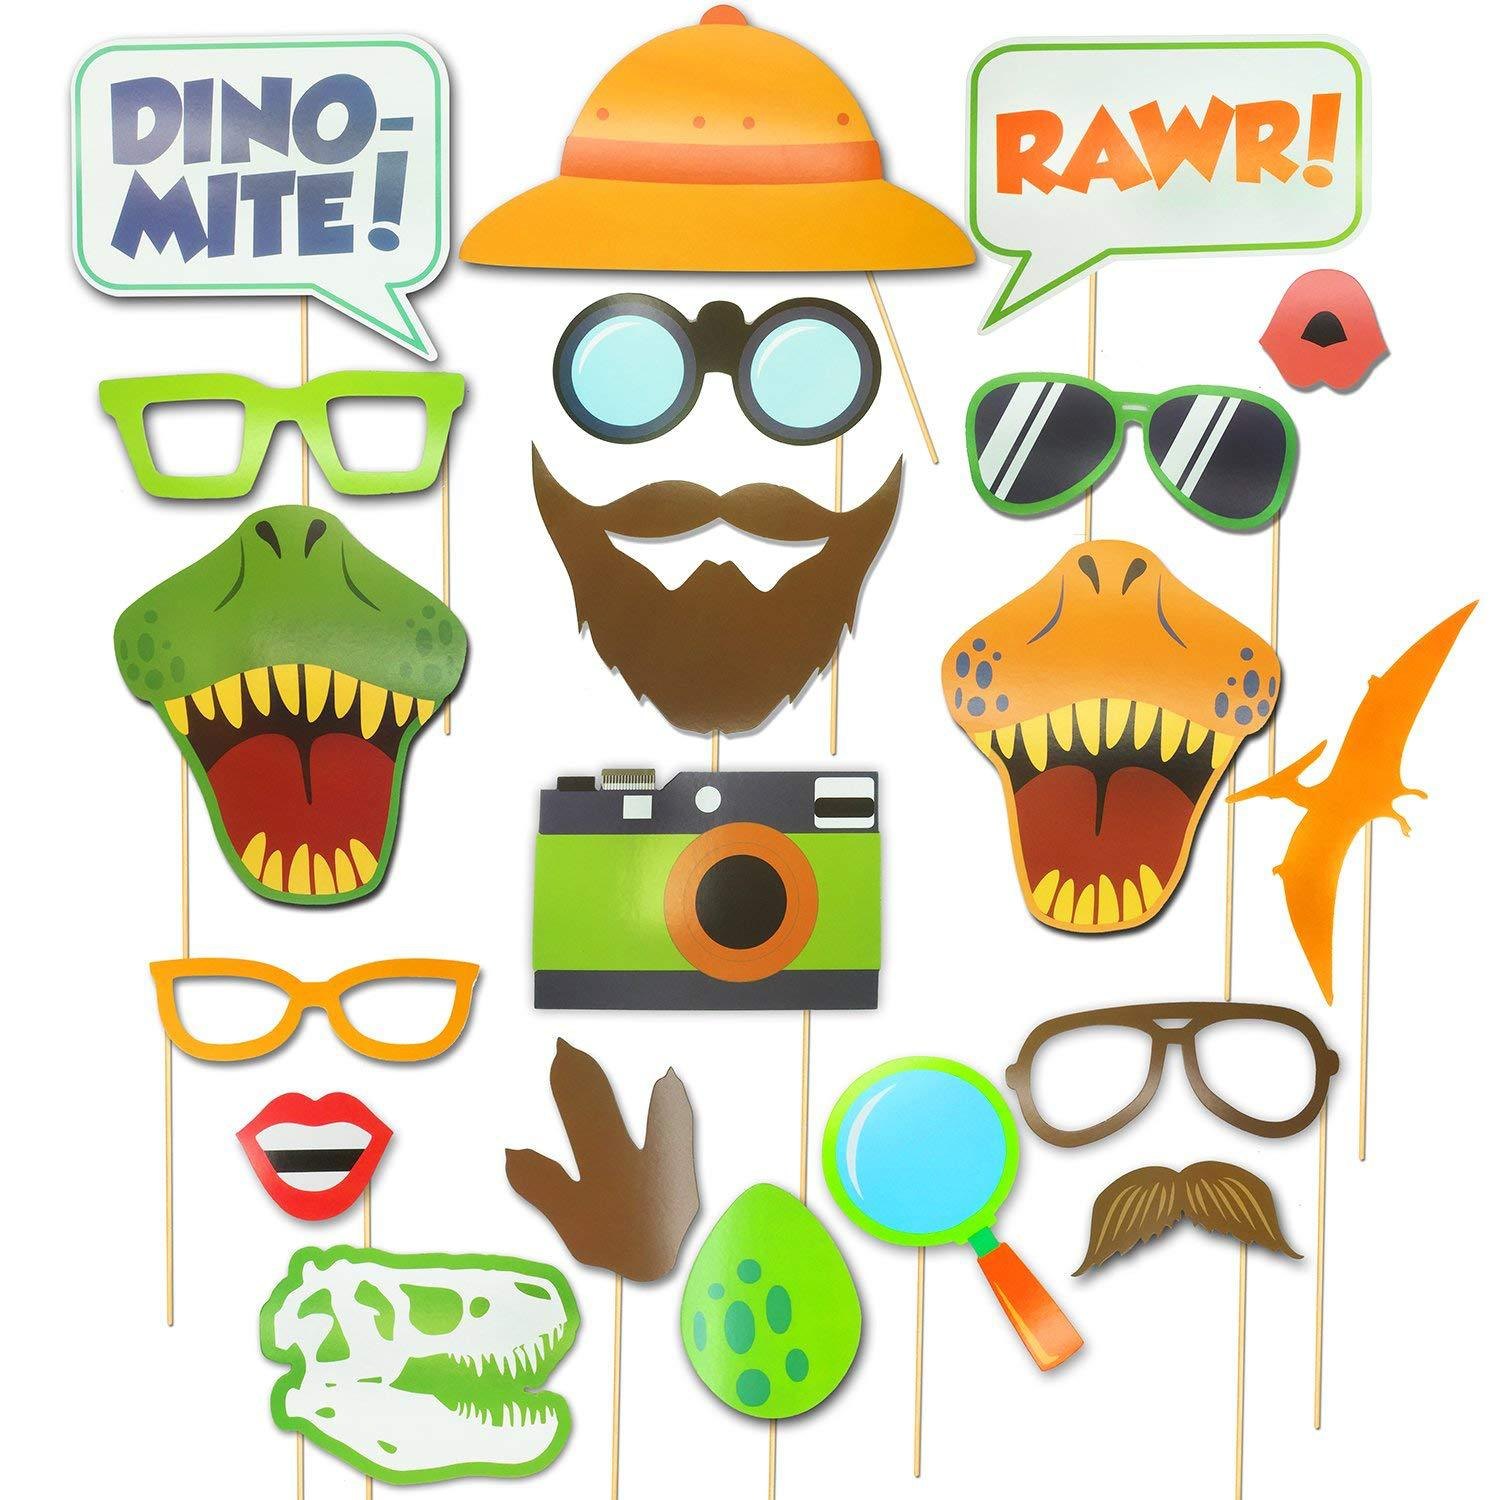 Kids Birthday Party Decorations Supplies Dinosaur Photo Booth Props DIY Kits Dinosaur Themed Party Cosplay Costume Favor Gifts